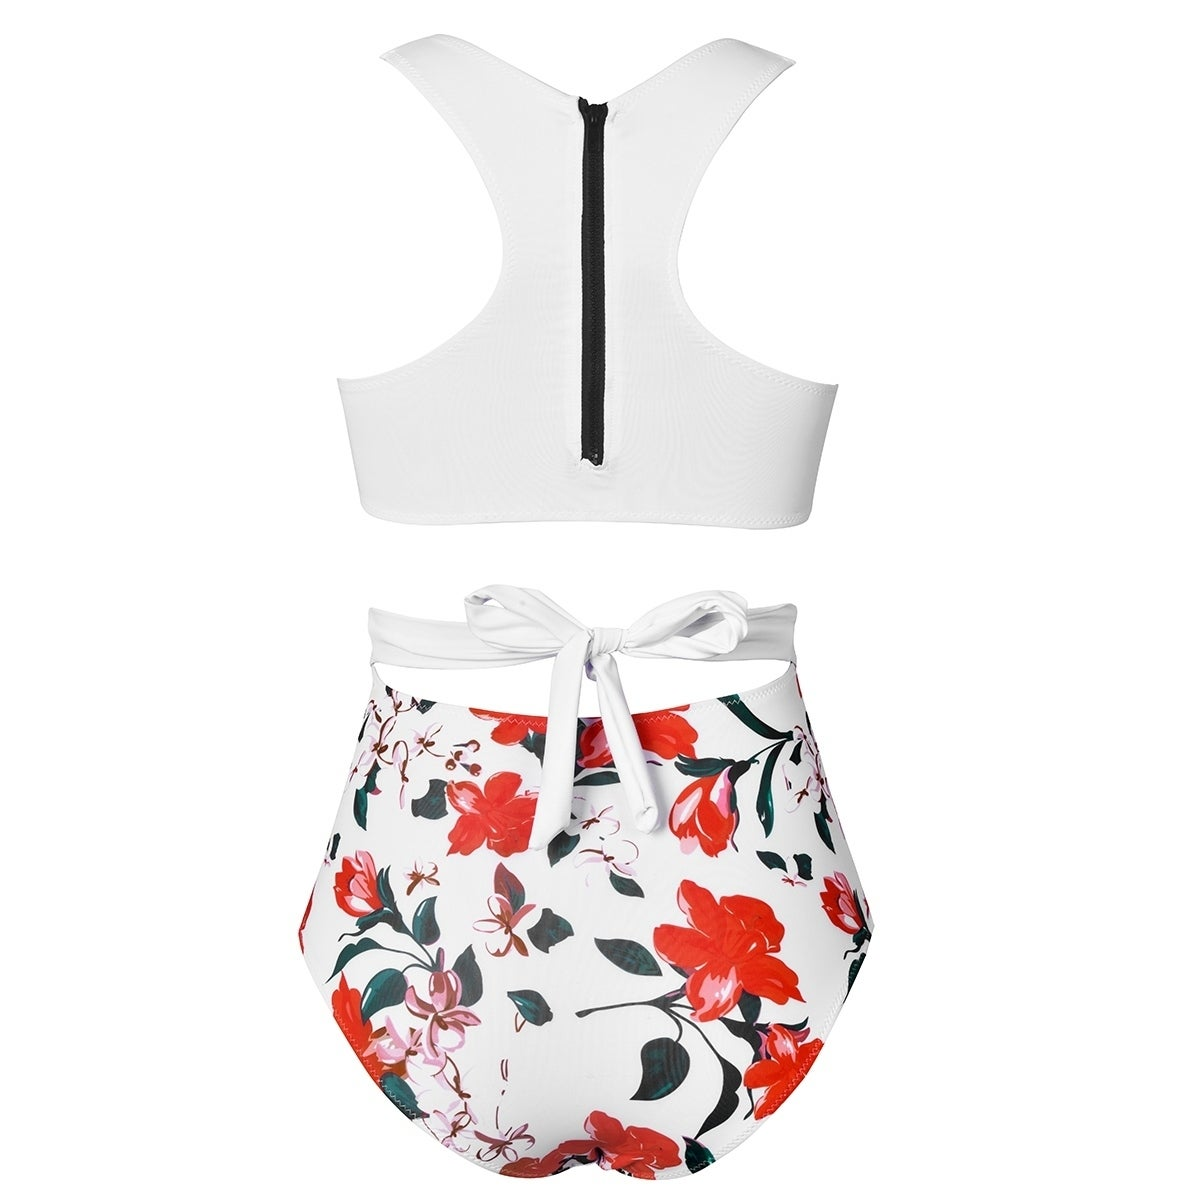 6031381c04 Shop Cupshe Women's Lily Print Padded One-Piece Swimsuit - Free Shipping On  Orders Over $45 - Overstock - 19566198